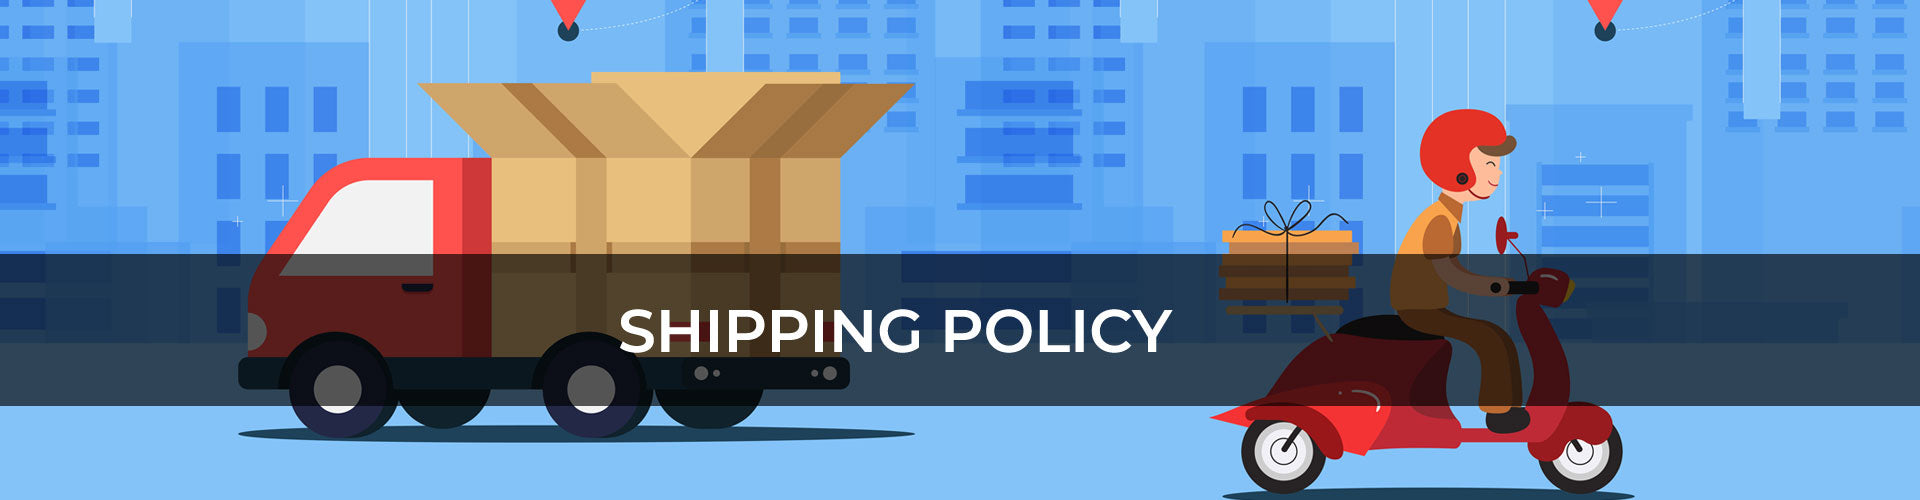 https://cdn.shopify.com/s/files/1/0281/4708/9486/files/banner-shipping-policy.jpg?v=1575457912